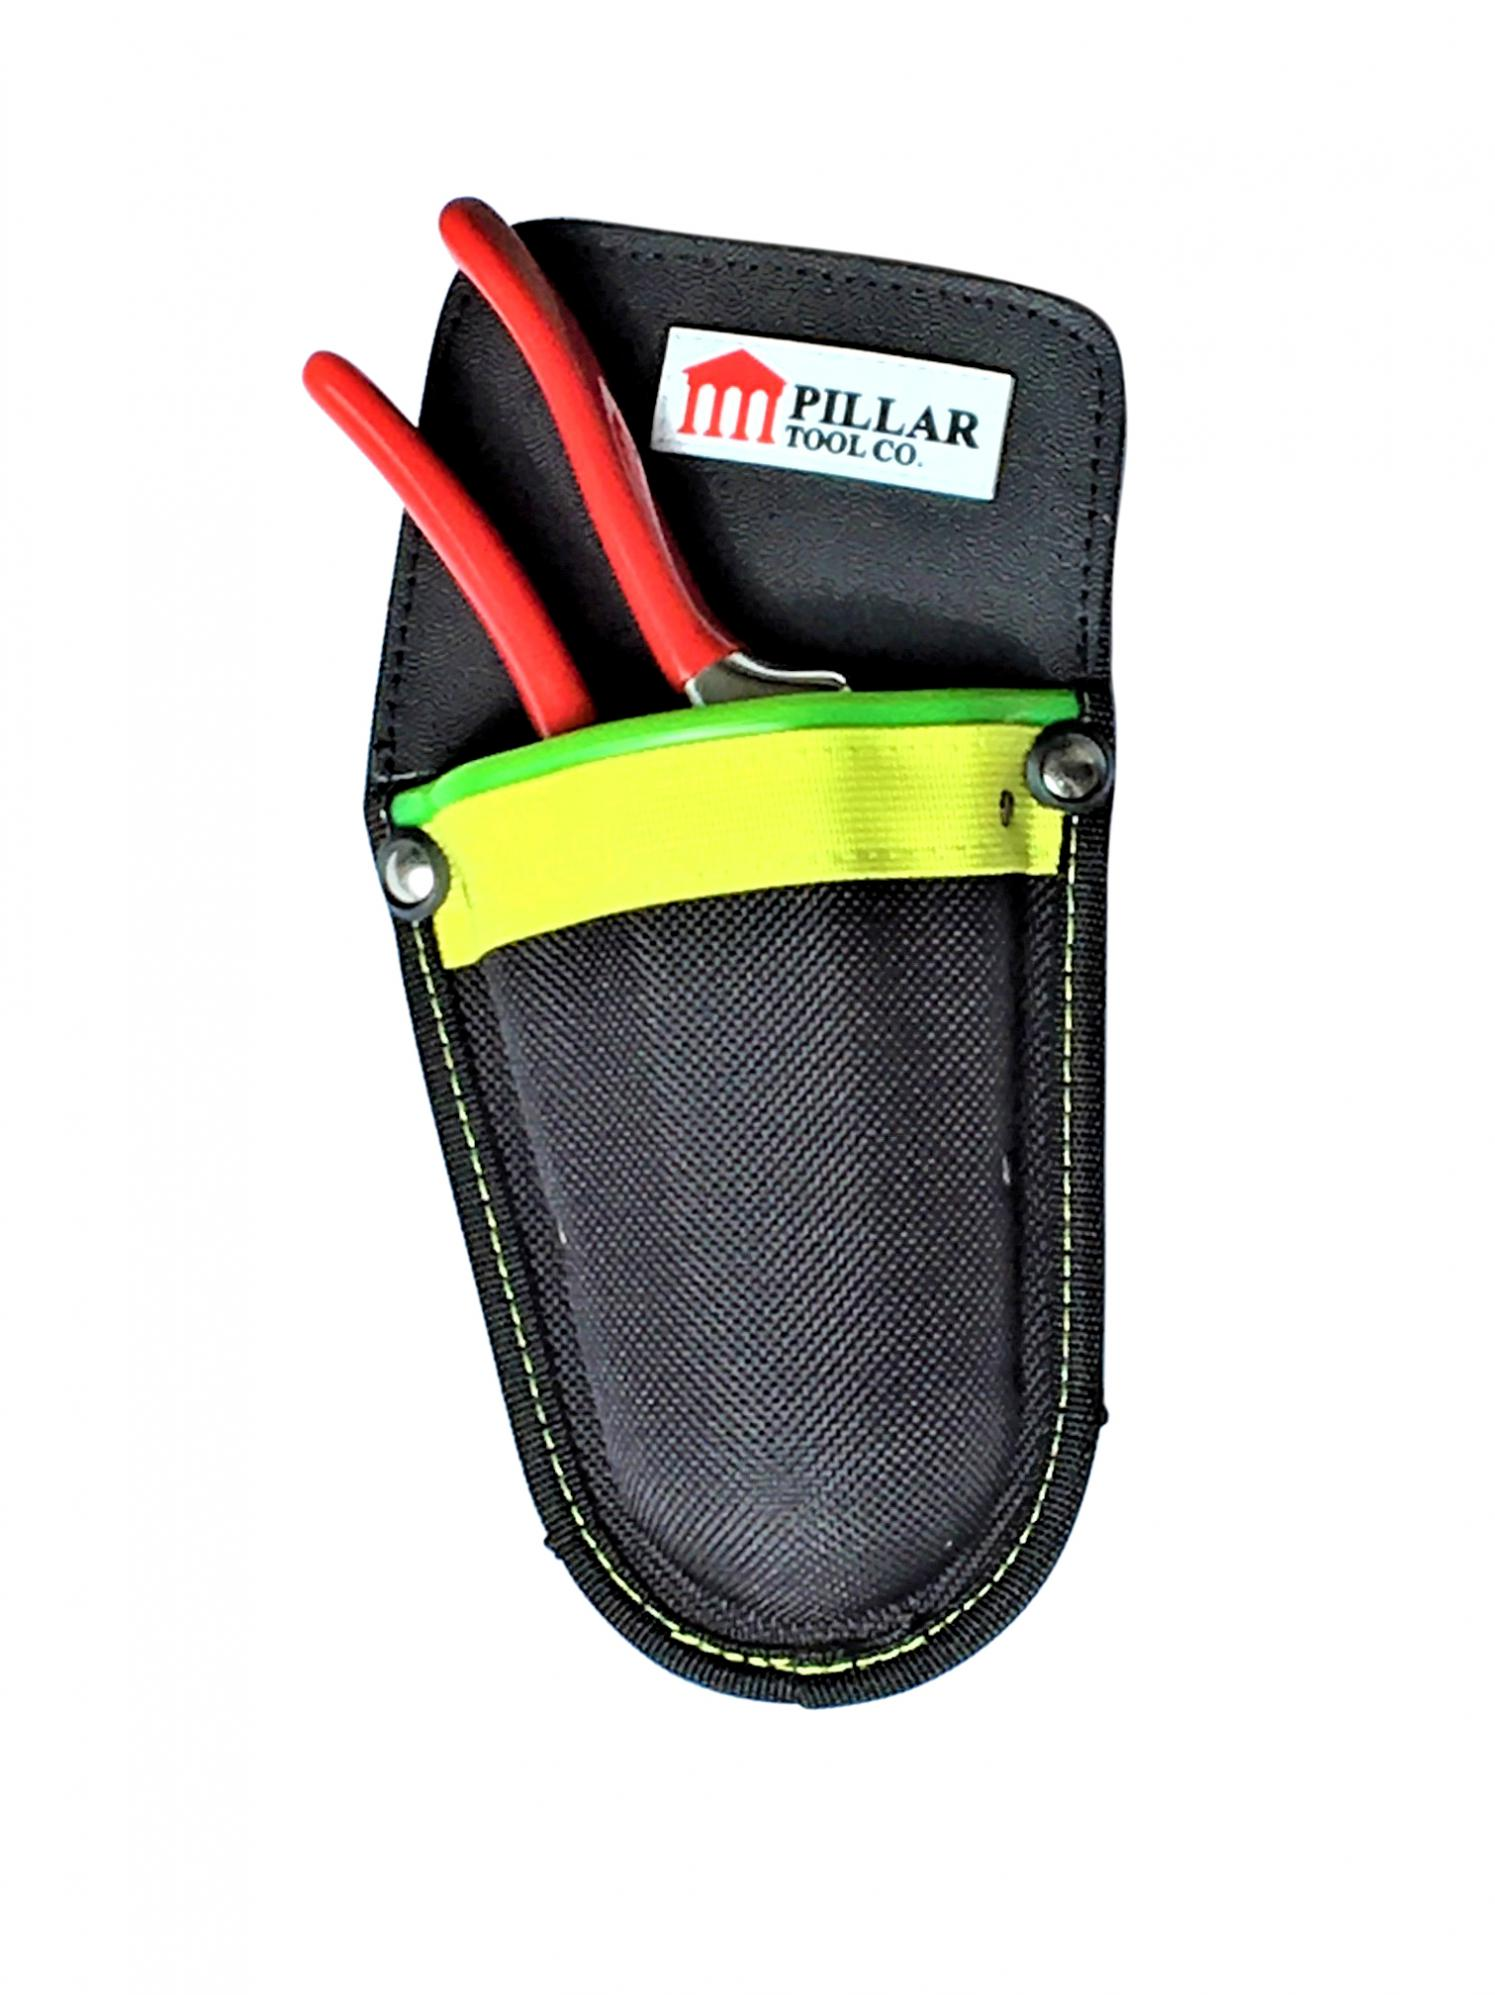 Horticultural Secateur Mk3 Pruner Scabbard Pouch™© NEW 2020       SORRY OUT OF STOCK